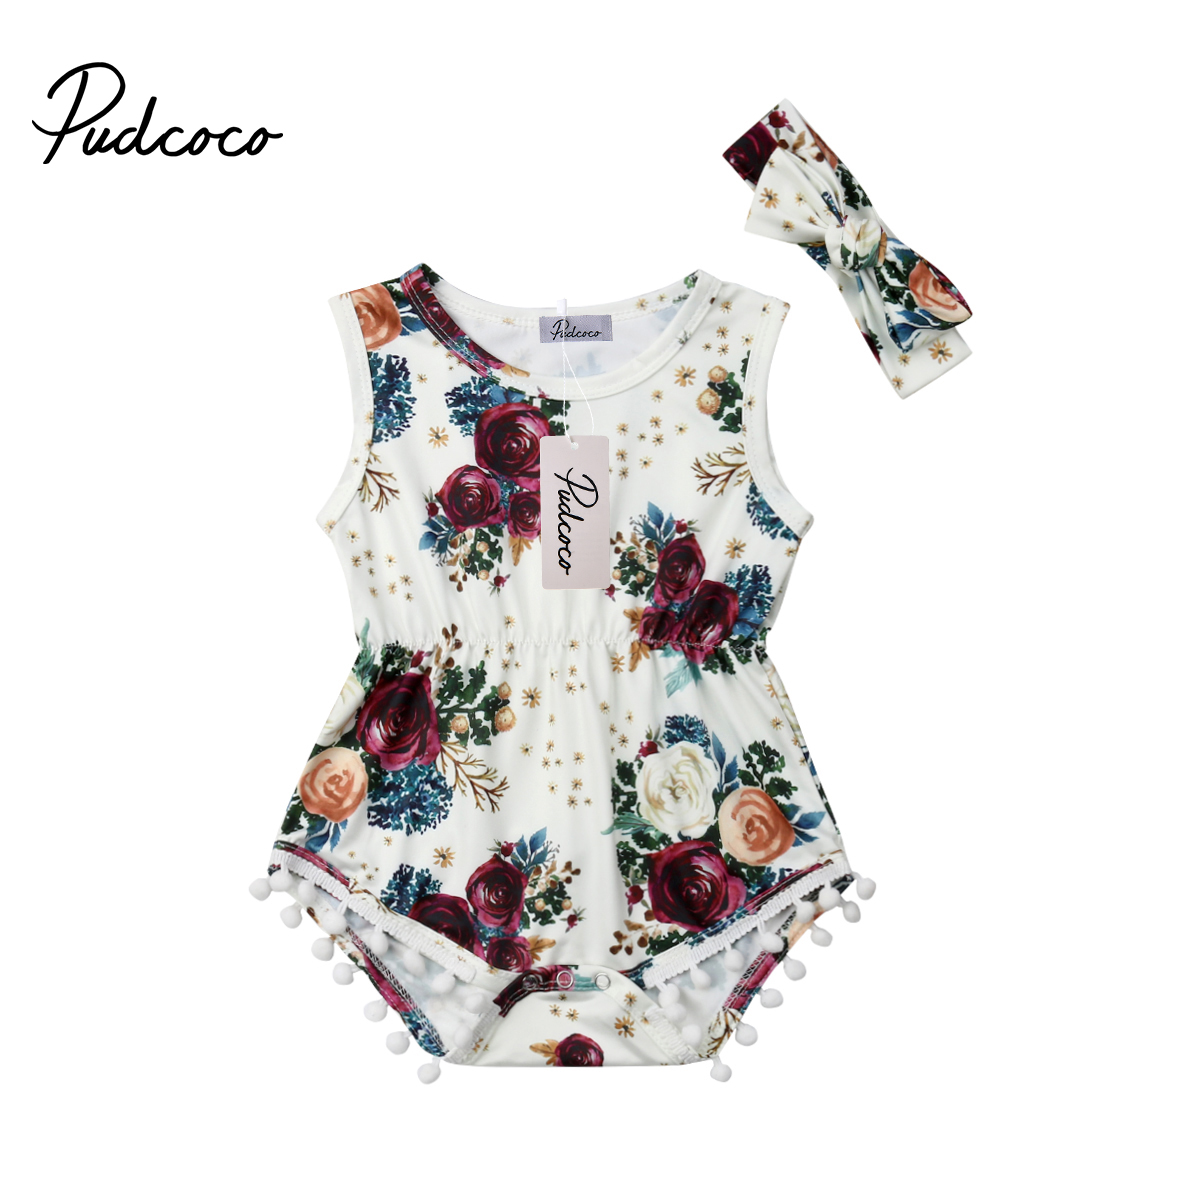 2019 Summer Baby Girls Floral Romper Jumpsuit Outfits Headband Clothes For Newborn Baby Girl Infant Children Cloth Kid Clothing